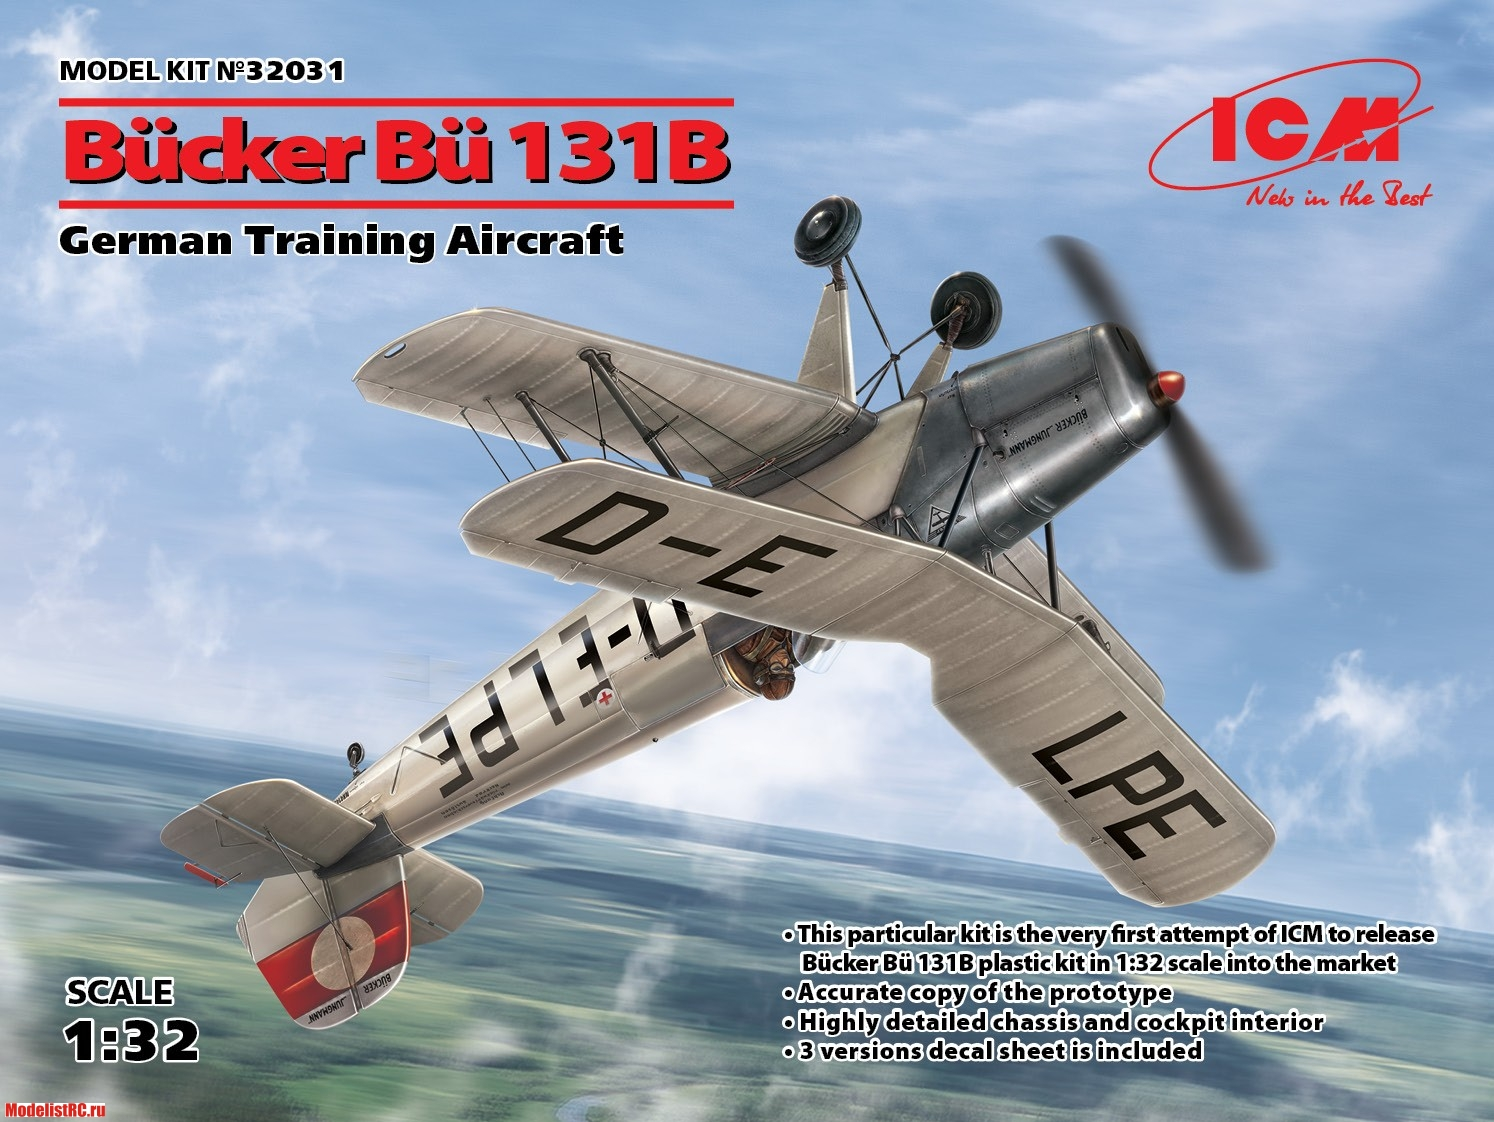 32031 ICM 1/32 Bücker Bü 131B, German Training Aircraft